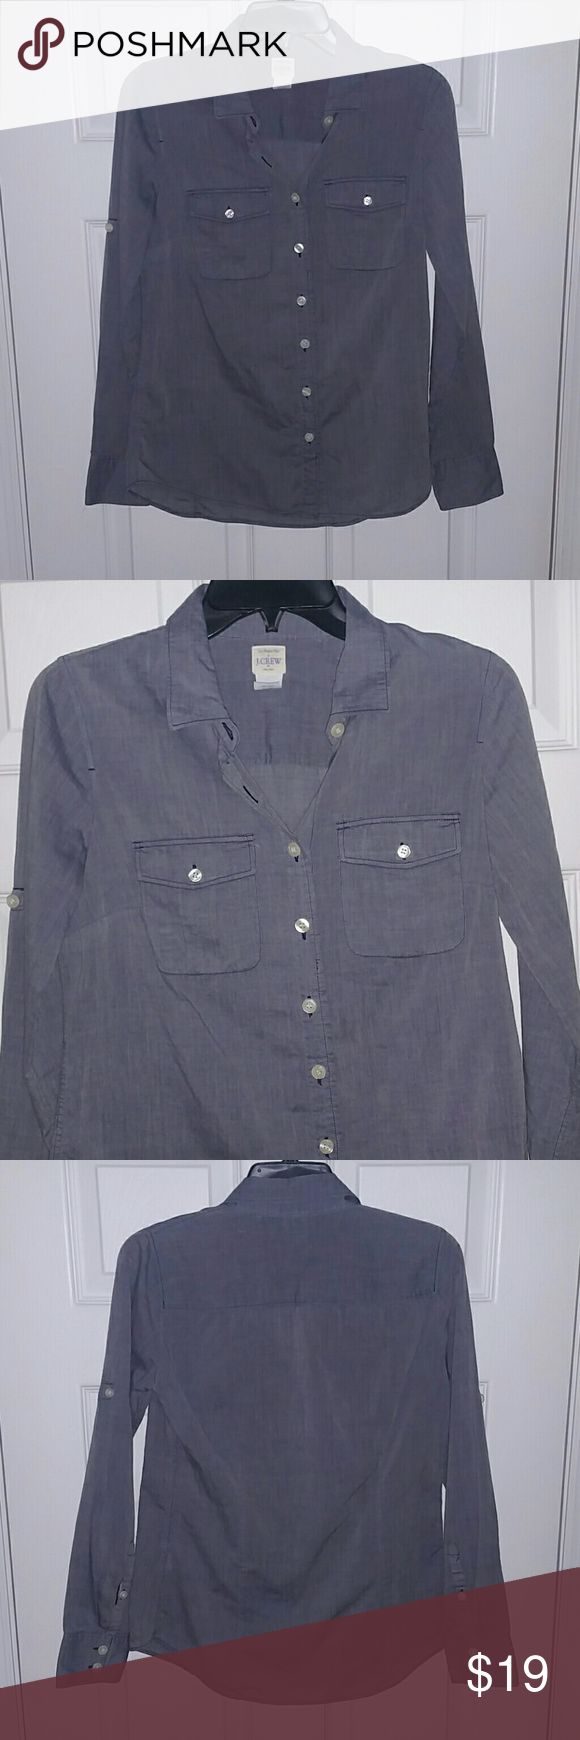 """JCREW LIGHTWEIGHT BUTTON DOWN SHIRT DENIM COLOR XS J CREW """"THE PERFECT SHIRT"""" COMFY & LIGHTWEIGHT, DENIM COLOR, BUTTON DOWN, LONGSLEEVE SHIRT.  SIZE: XS  EUC: Excellent Used Condition. Worn less than a handful of times. Gently Laundered!  100% Cotton  FAST SHIPPING! Same or Next Day Shipping!  No Smoking, Buy It Now, Bundle Discounts Available, Reasonable Offers Accepted, Sorry NO Trades!!  HAPPY SHOPPING=) J. Crew Tops Button Down Shirts"""